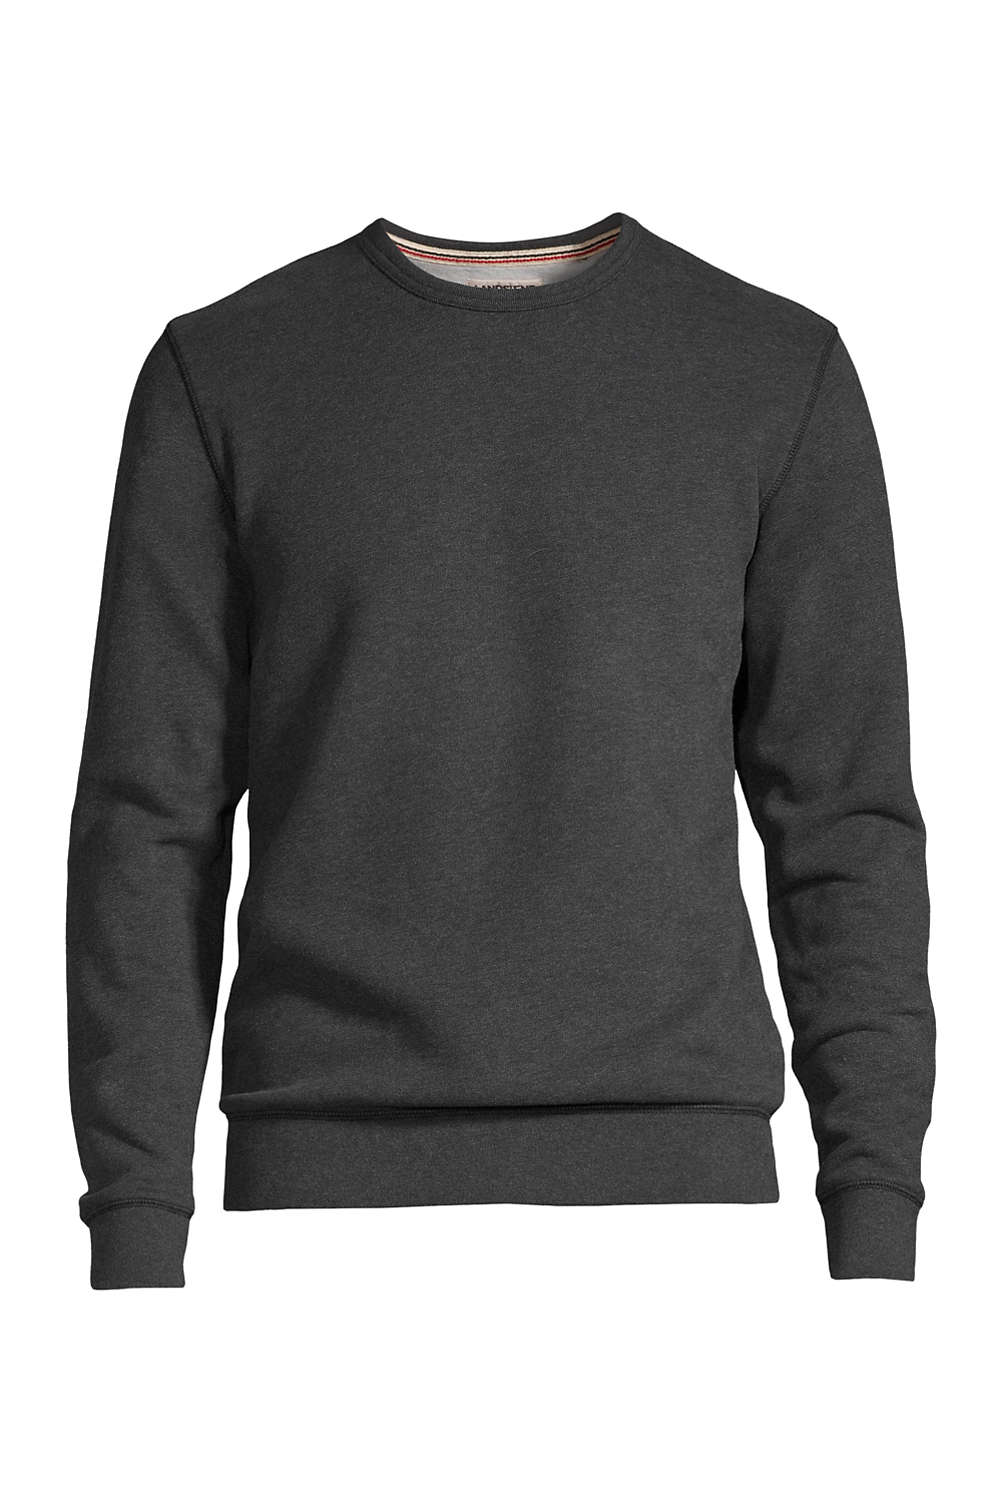 0d7fa31371f4 Men s Serious Sweats Crewneck Sweatshirt from Lands  End